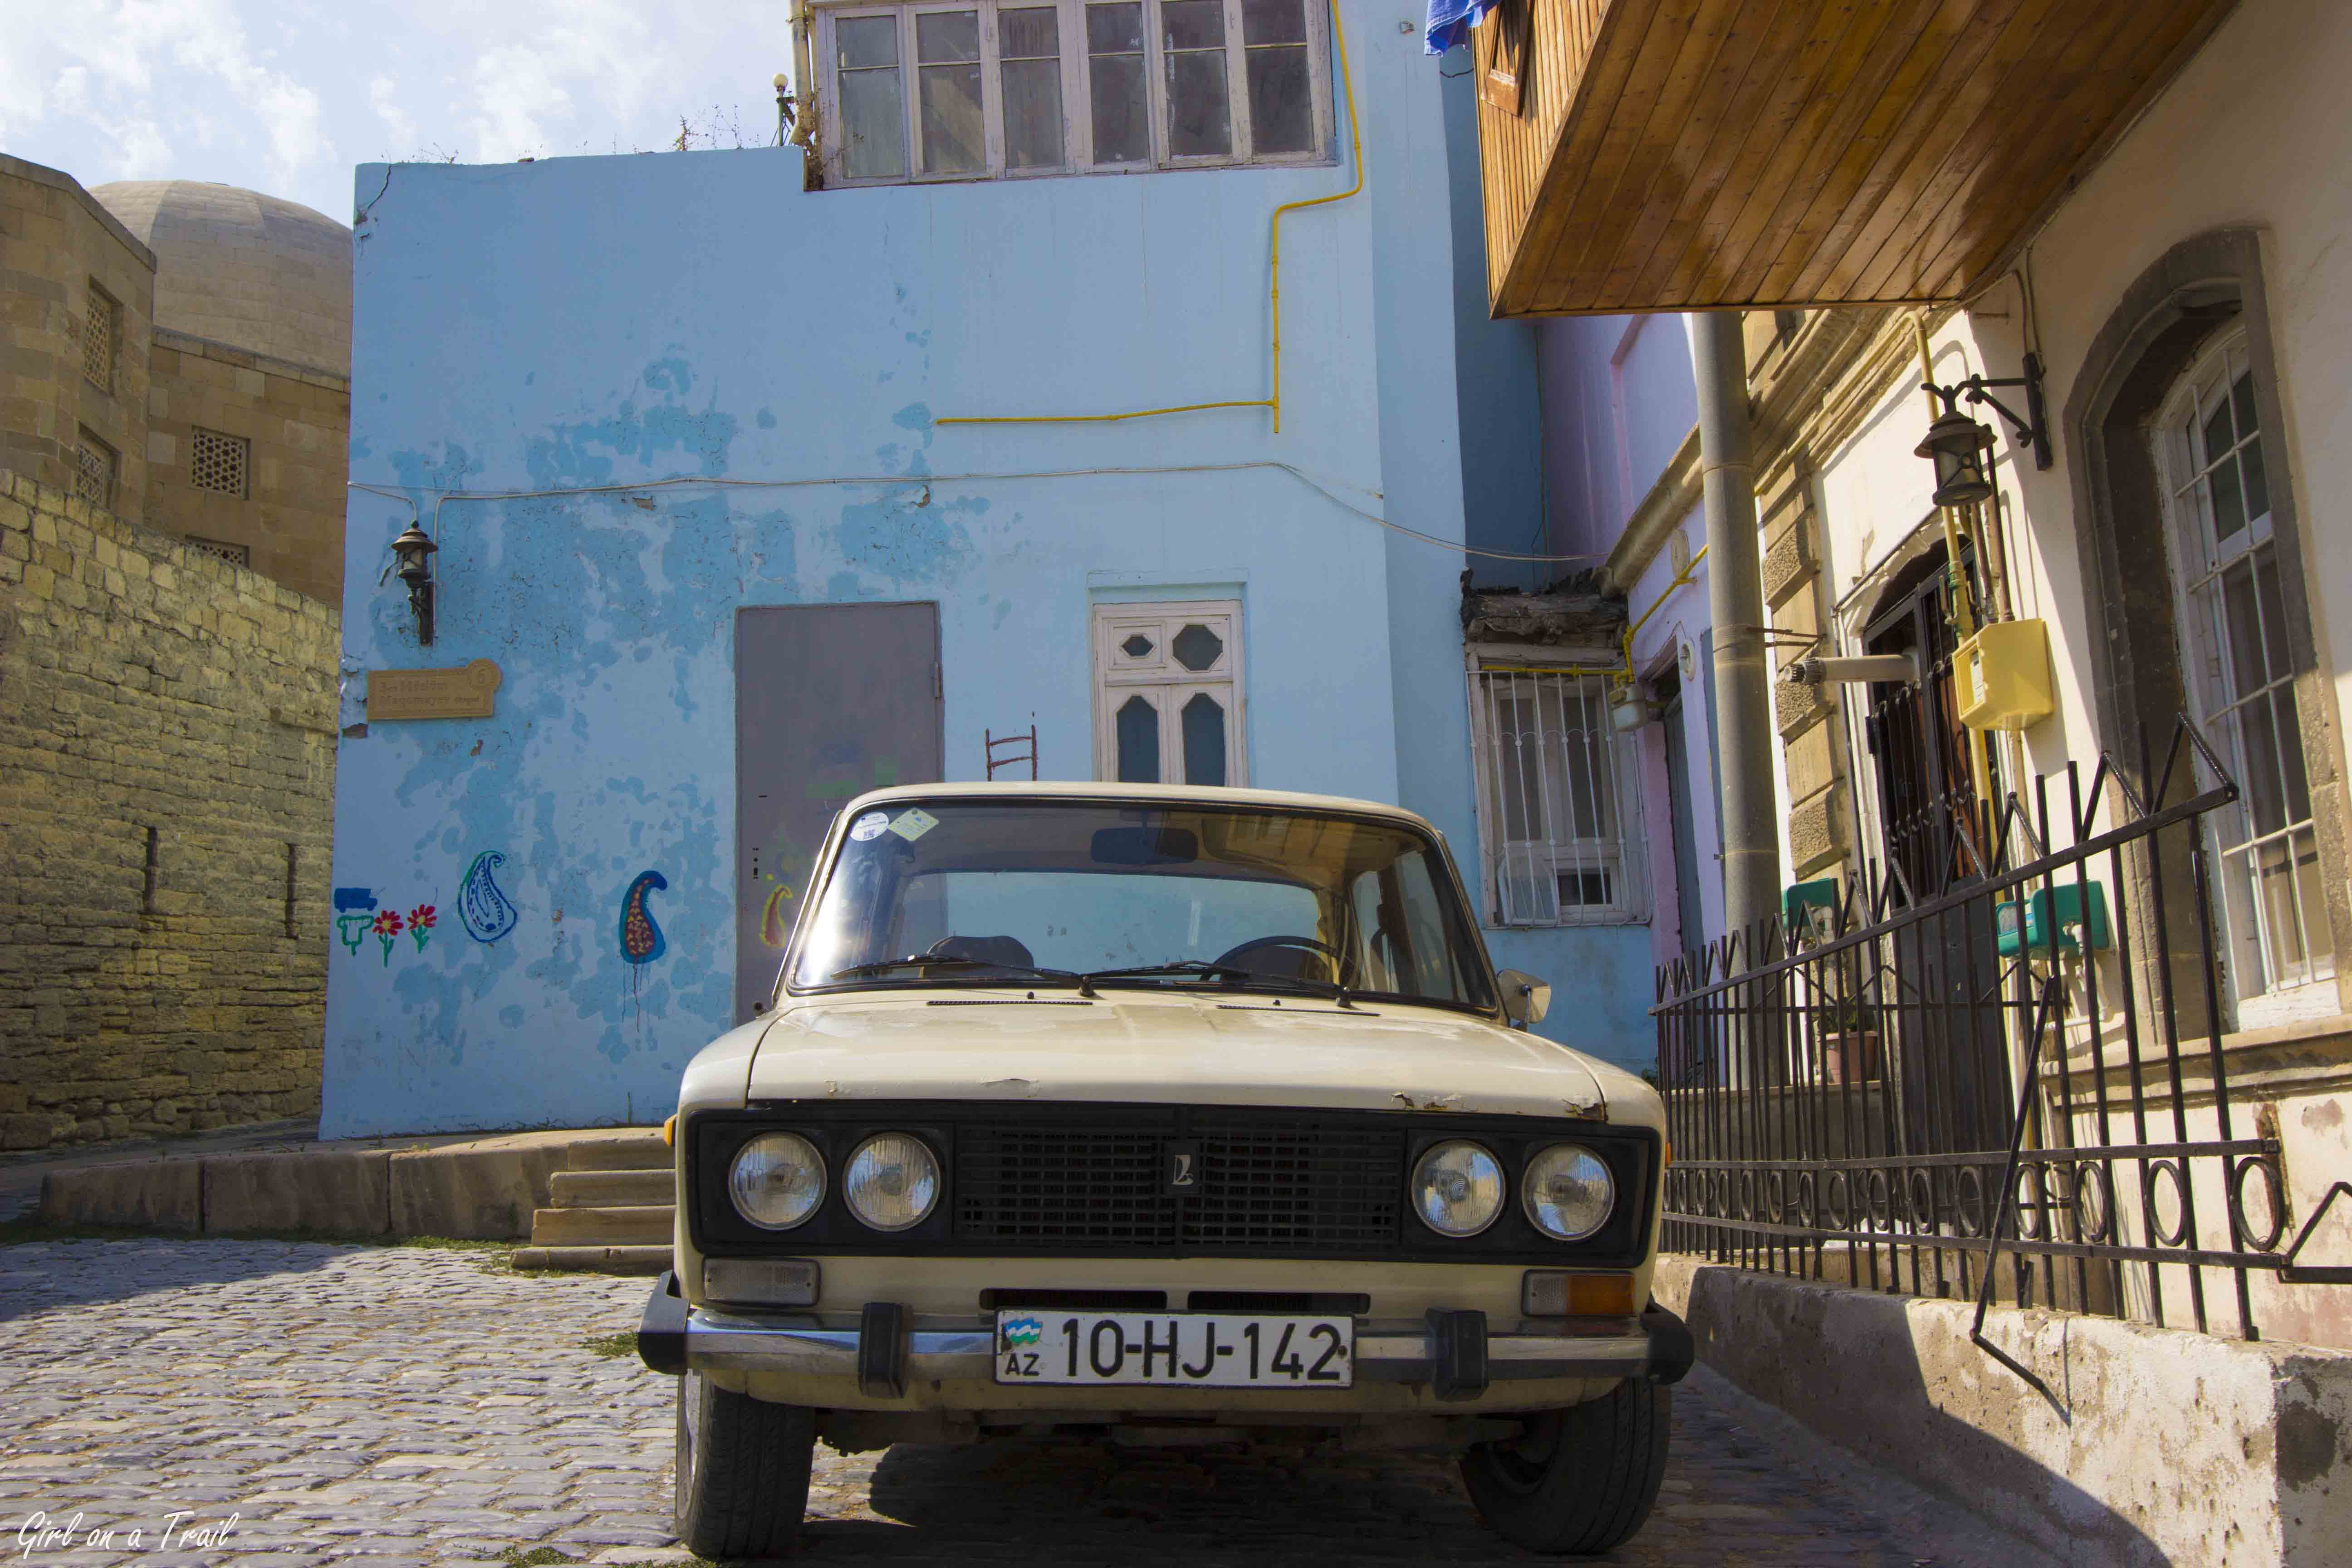 Azerbaijan, Baku – Mad Max in the shade of glass houses